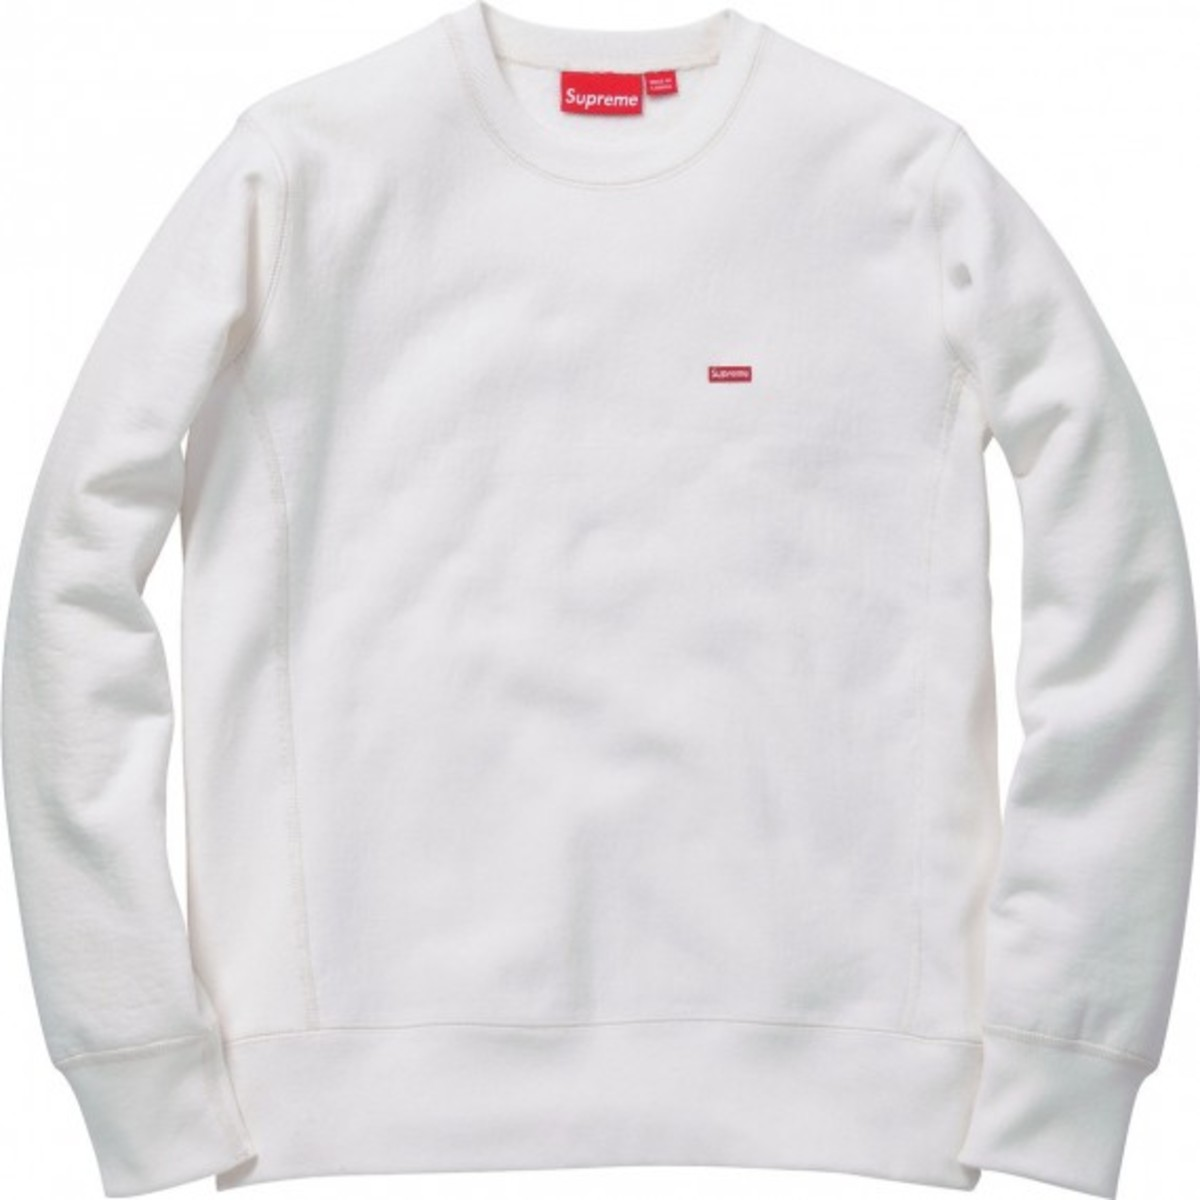 supreme-fall-winter-2011-collection-available-now-08